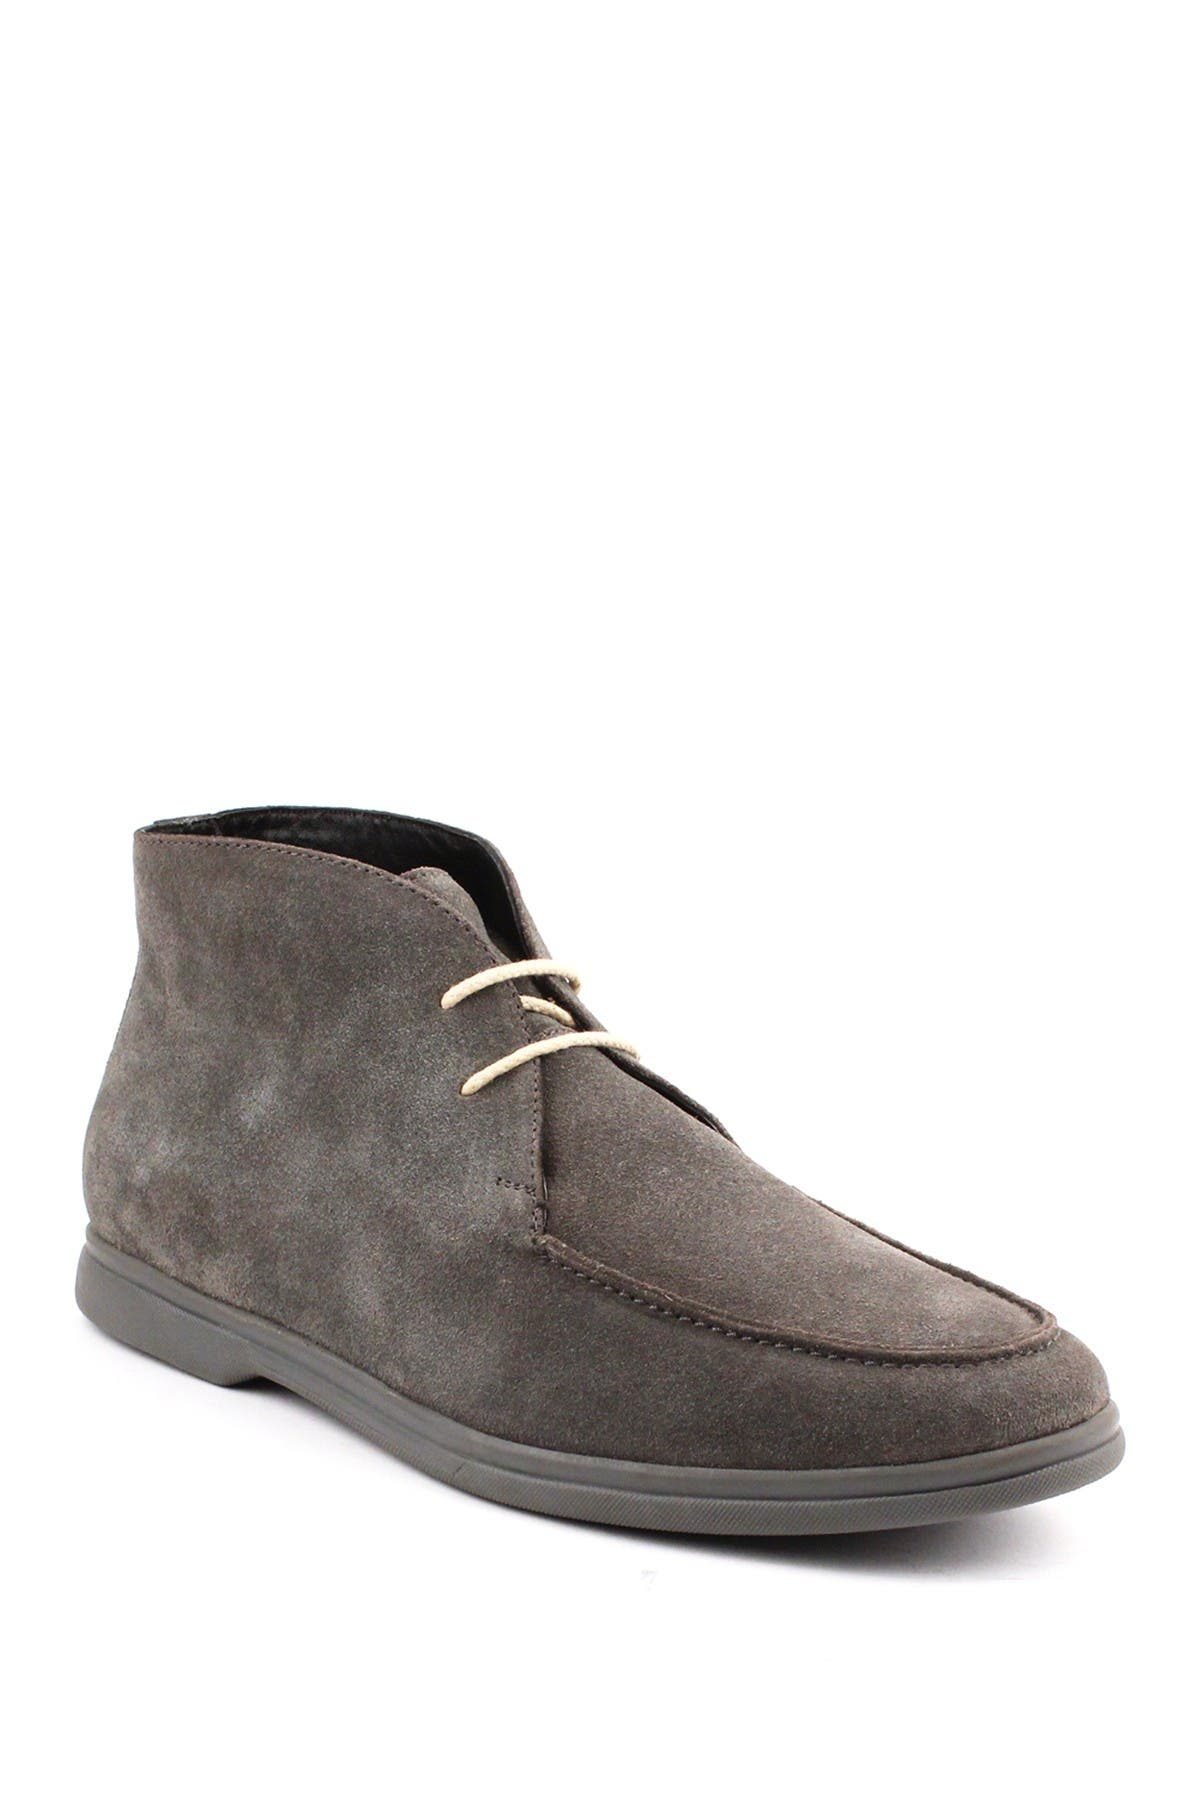 Image of MODERN FICTION Diction Suede Moc Toe Boot